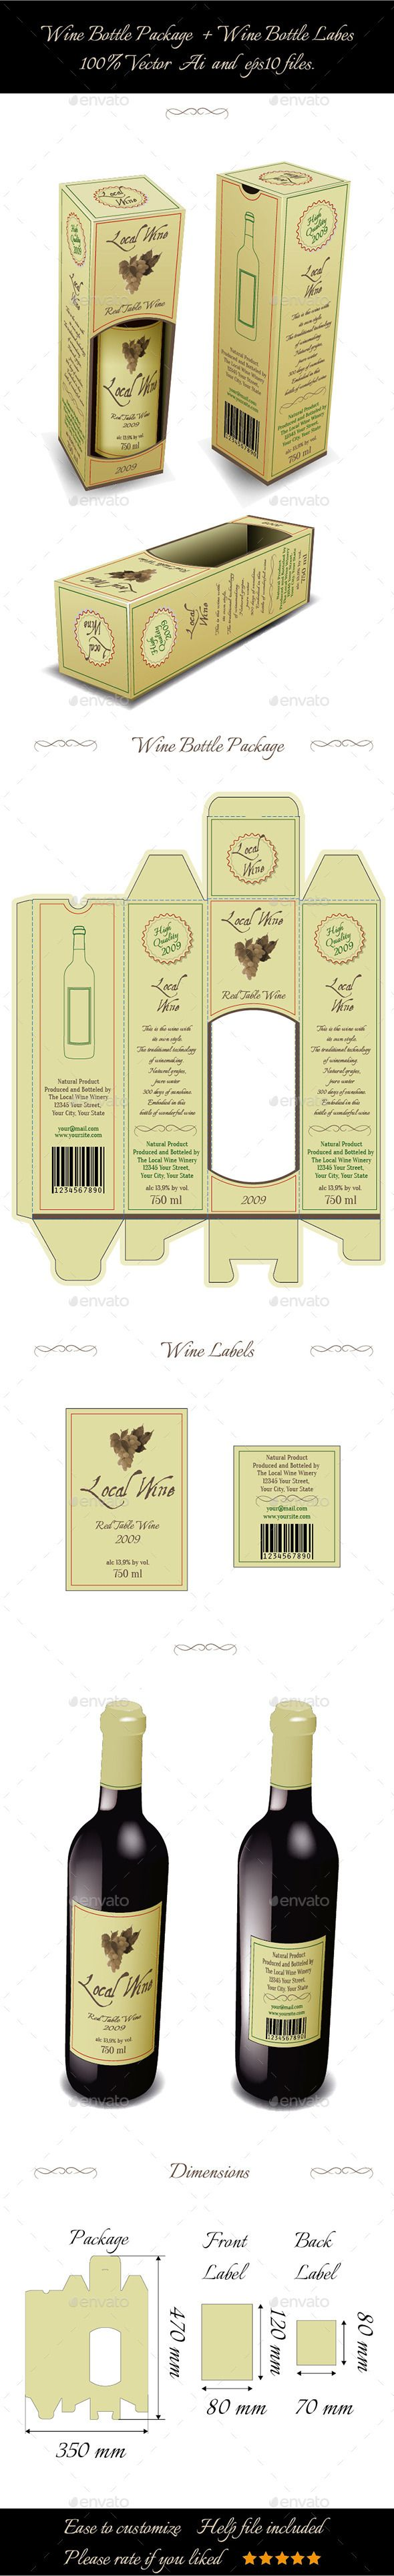 Wine Bottle Package And Bottle Labels 9153969